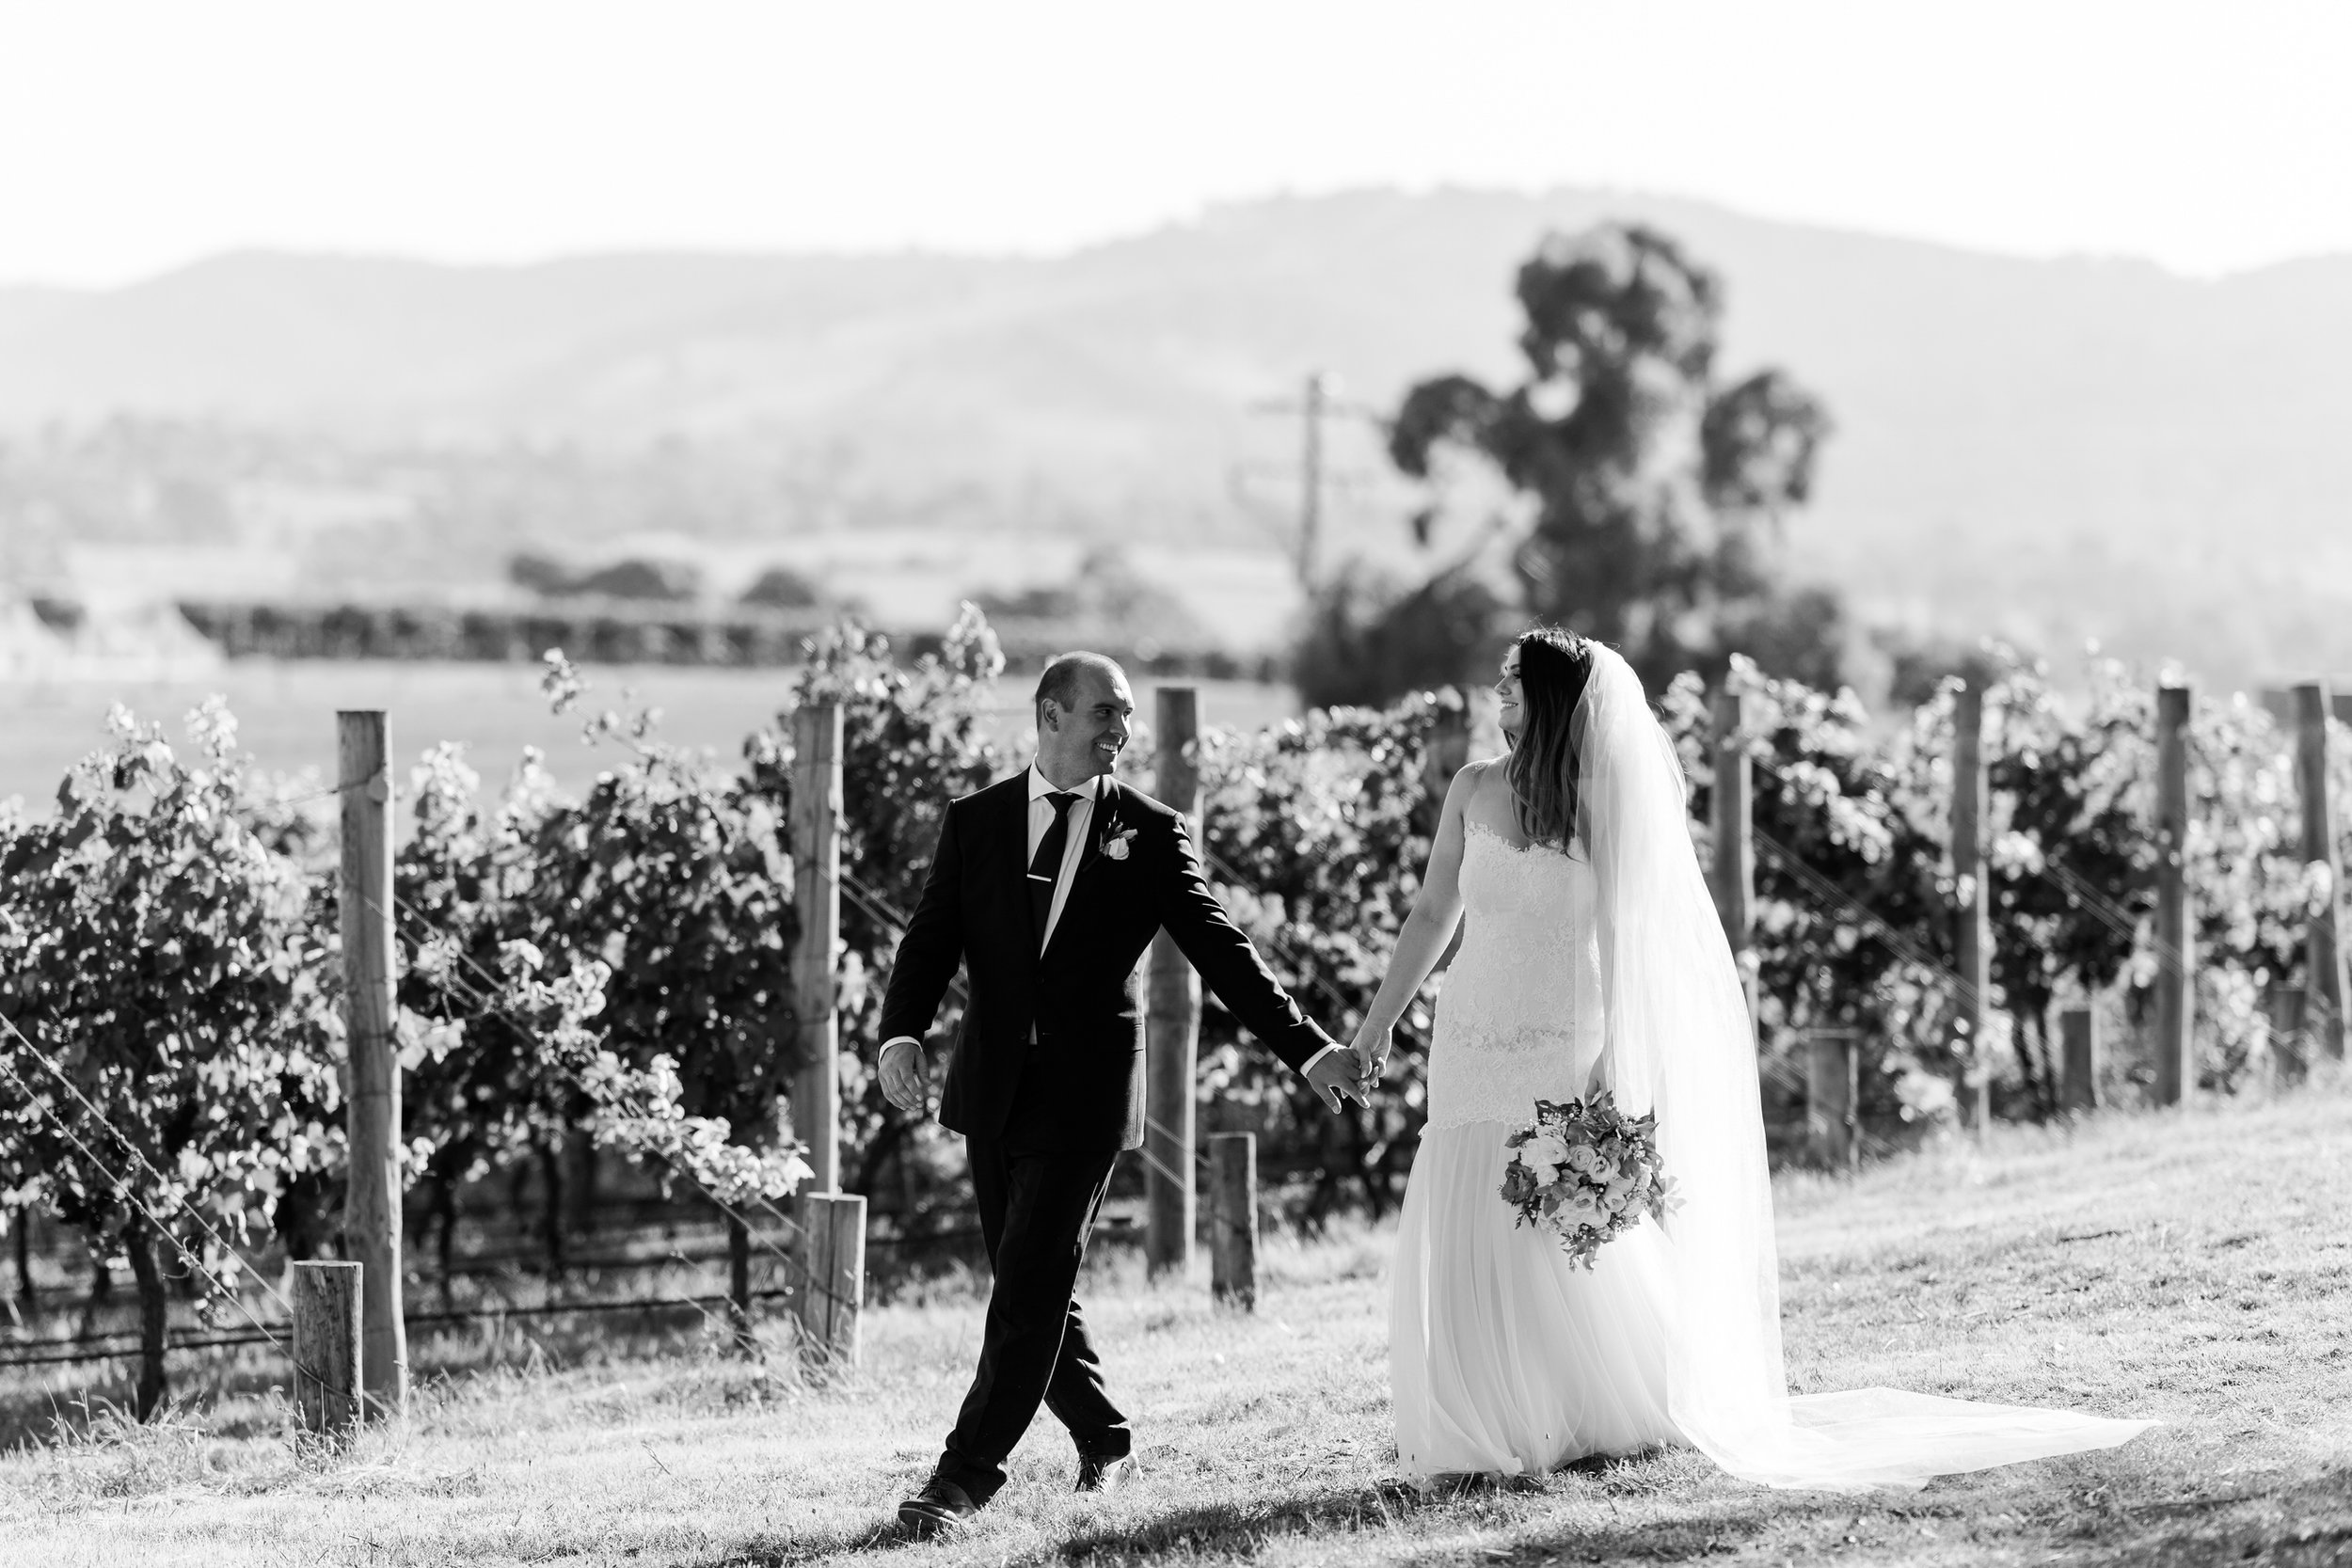 Justin_And_Jim_Photography_Balgownie_Winery_Wedding45.JPG